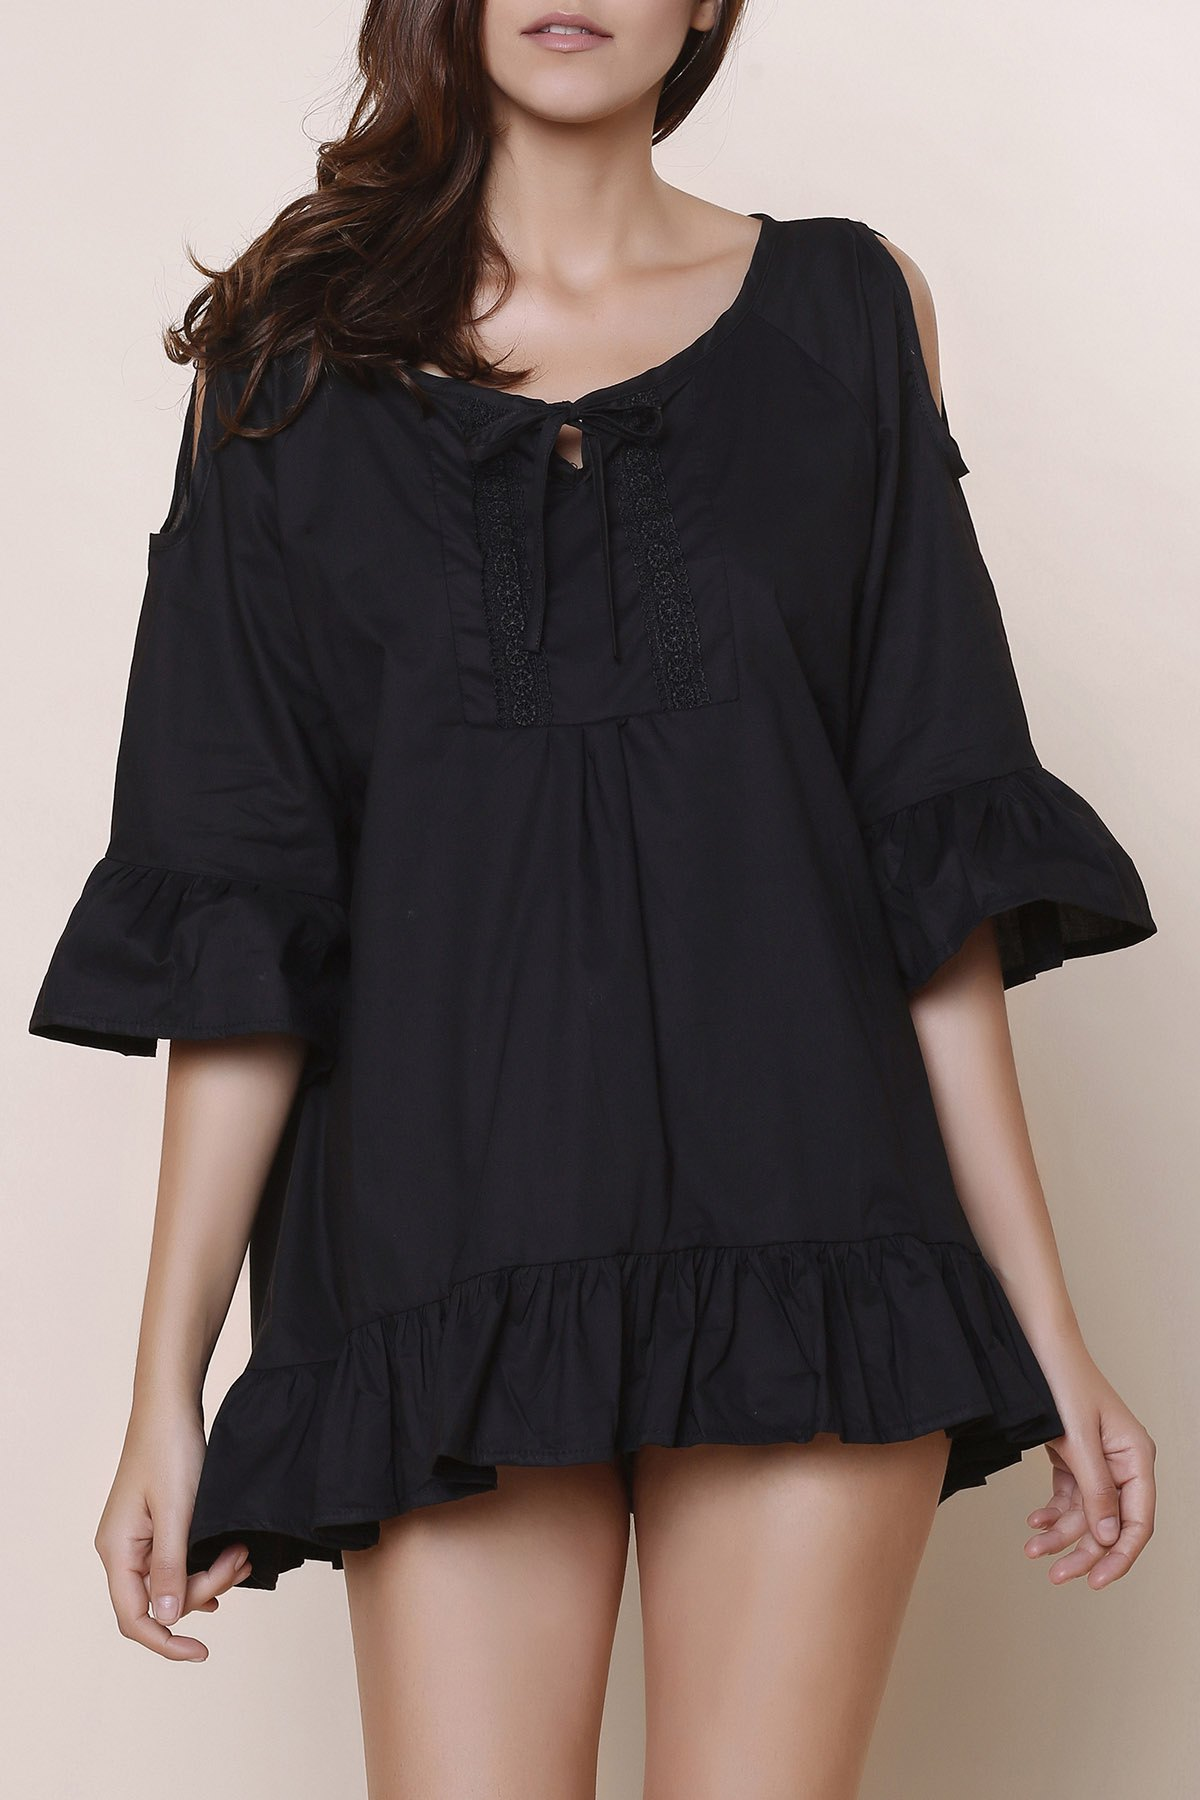 Sweet Solid Color Scoop Neck Ruffles 3/4 Sleeve Blouse For Women - BLACK 4XL